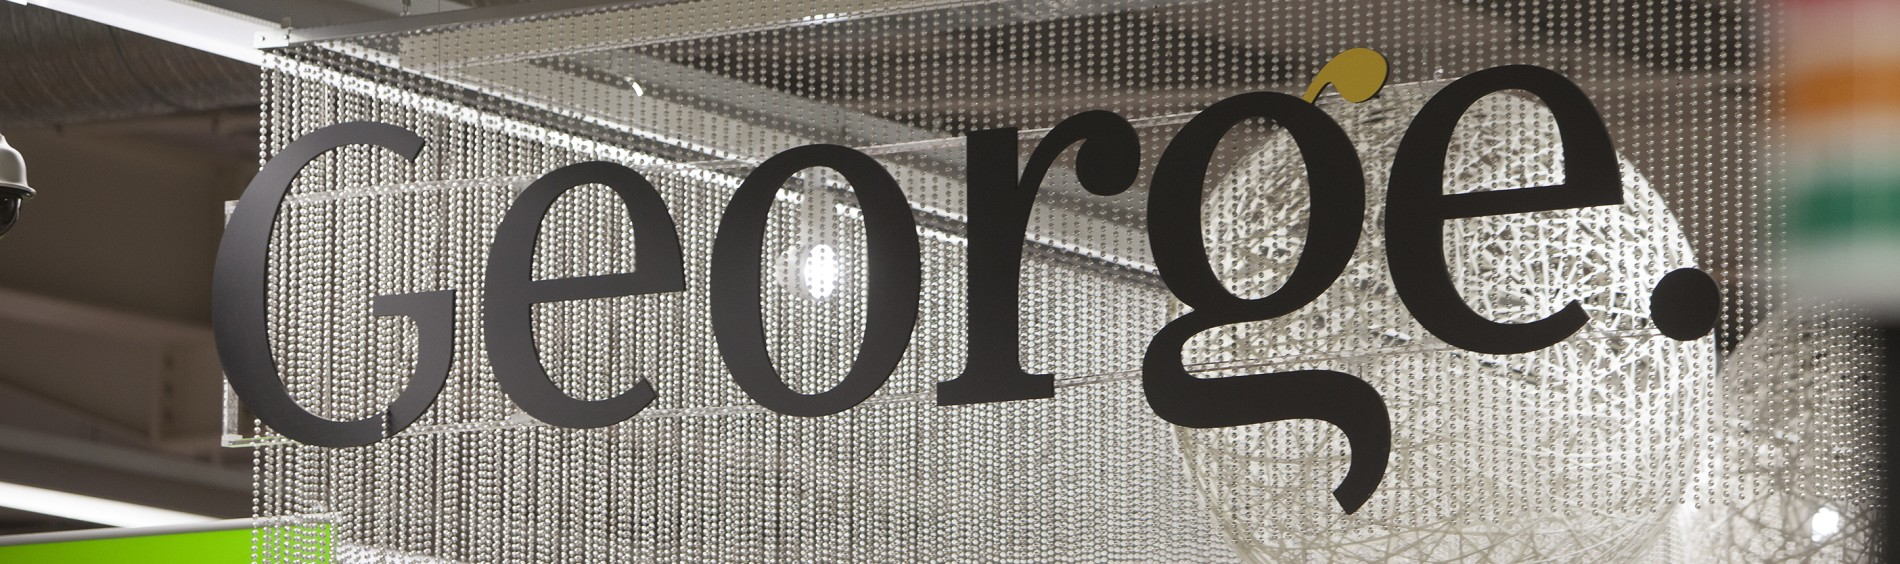 "A department sign hangs from the ceiling and reads ""George."""